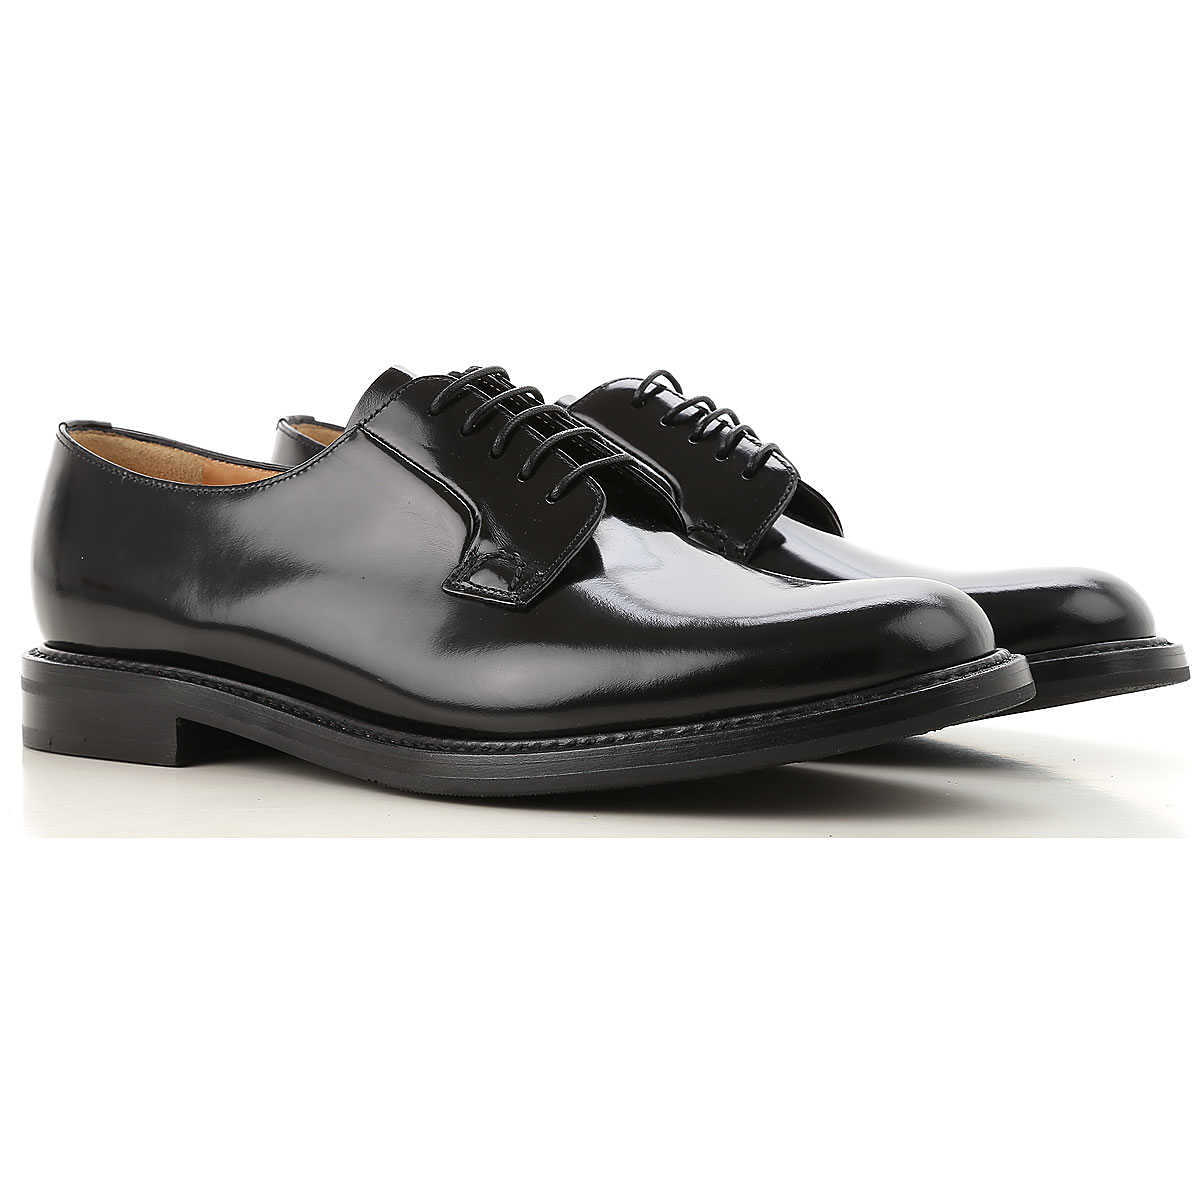 Church's Oxford Lace up Shoes for Women Black Canada - GOOFASH - Womens LEATHER SHOES